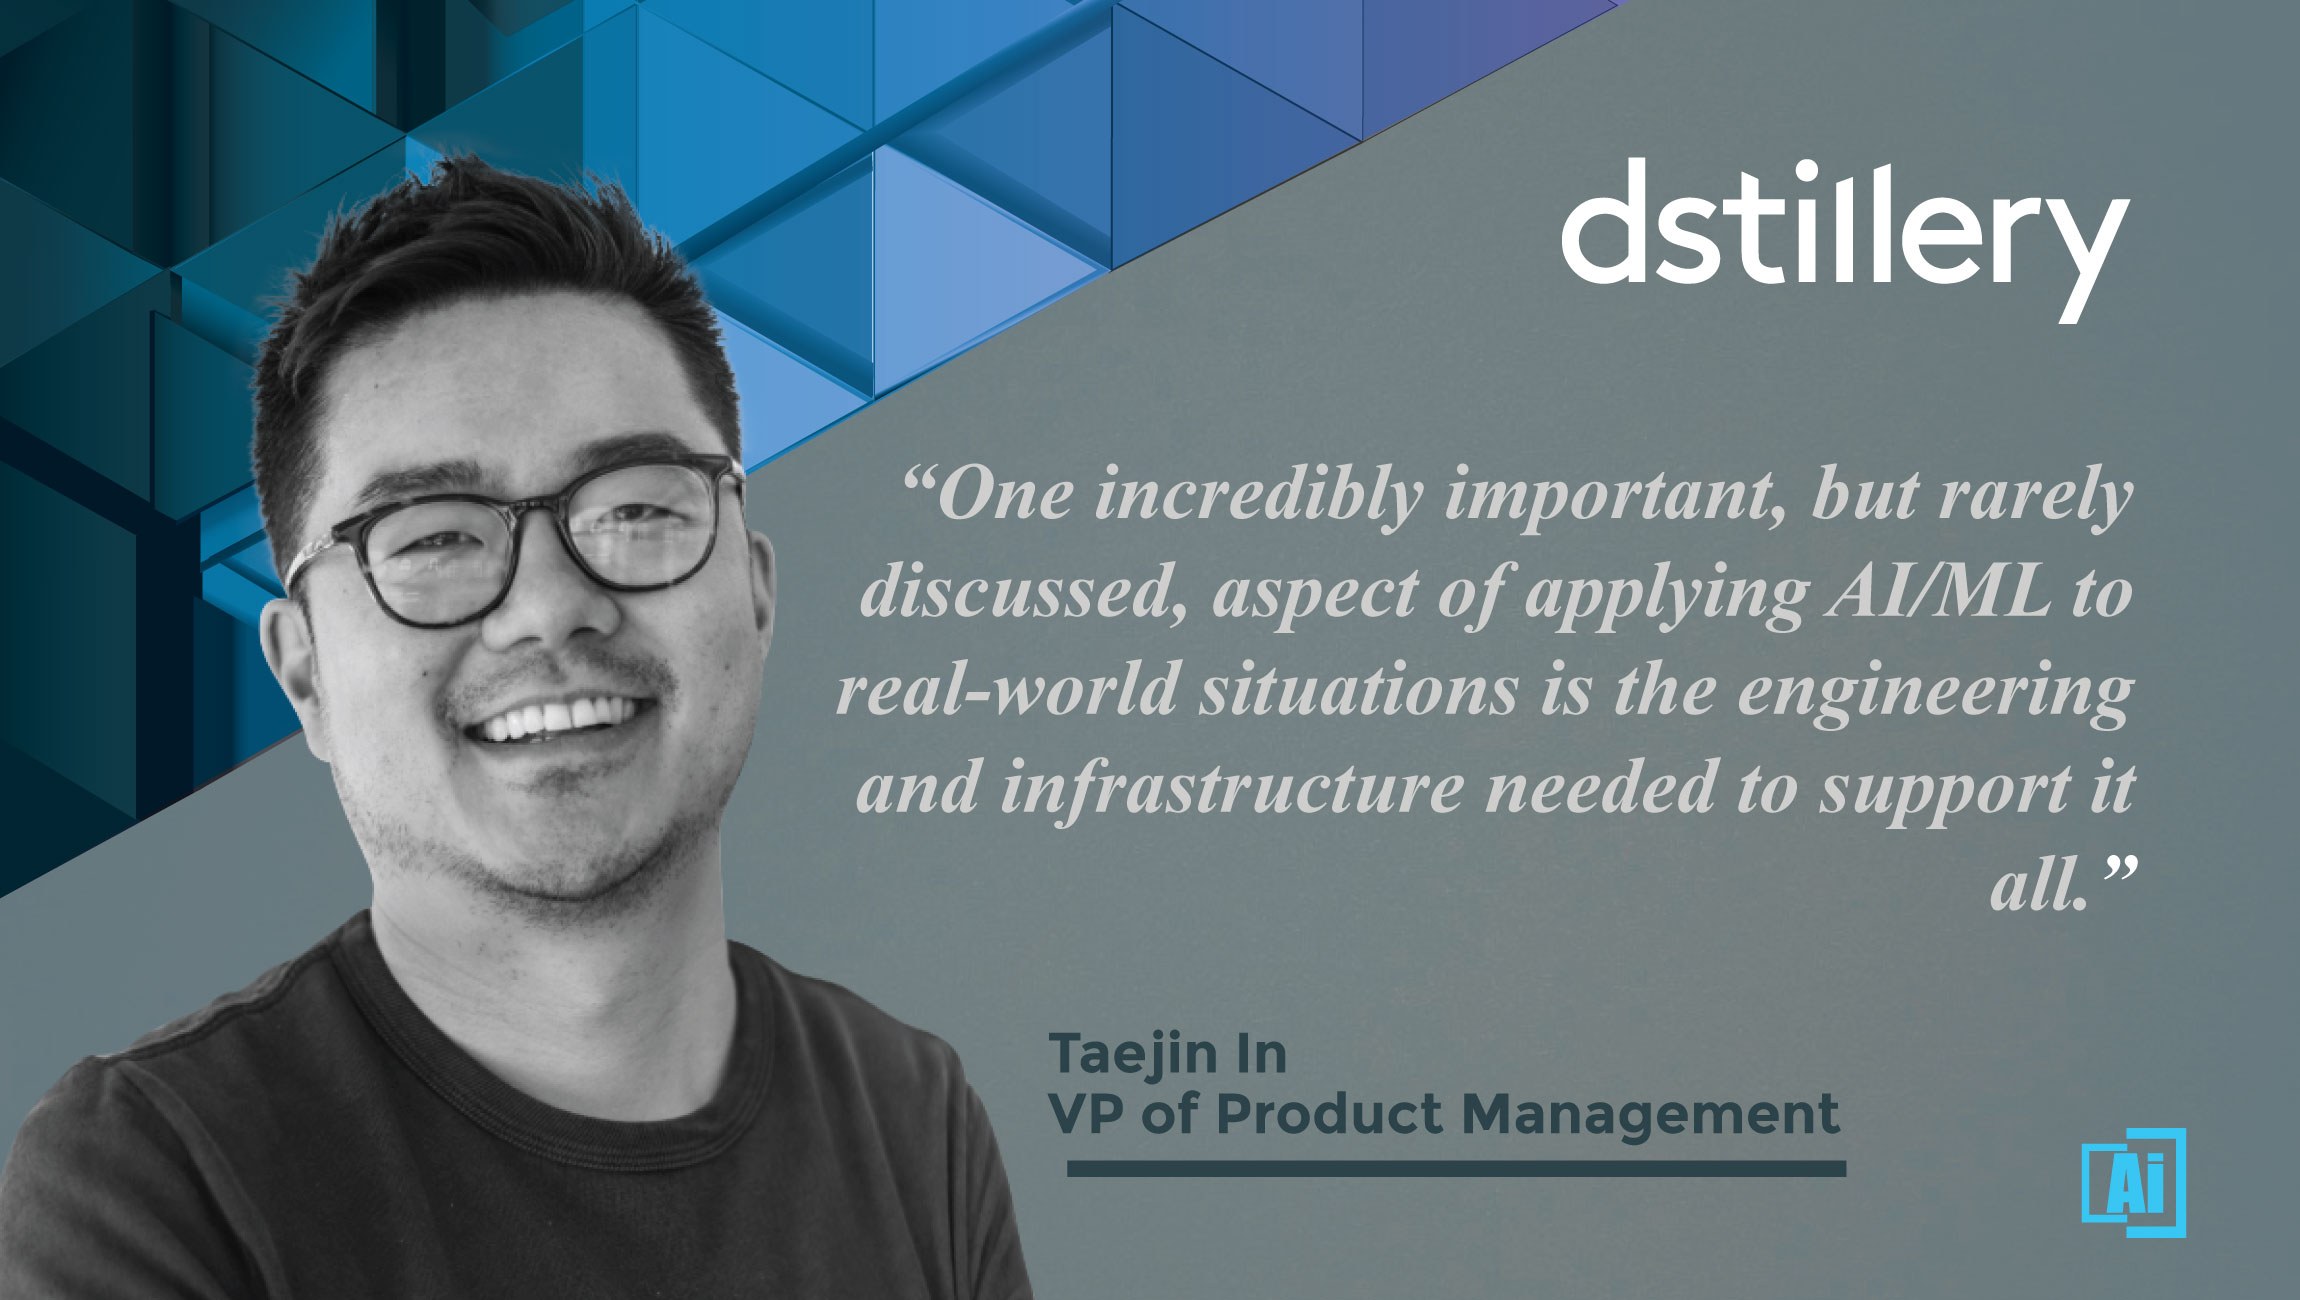 AiThority Interview with Taejin In, VP of Product Management at dstillery